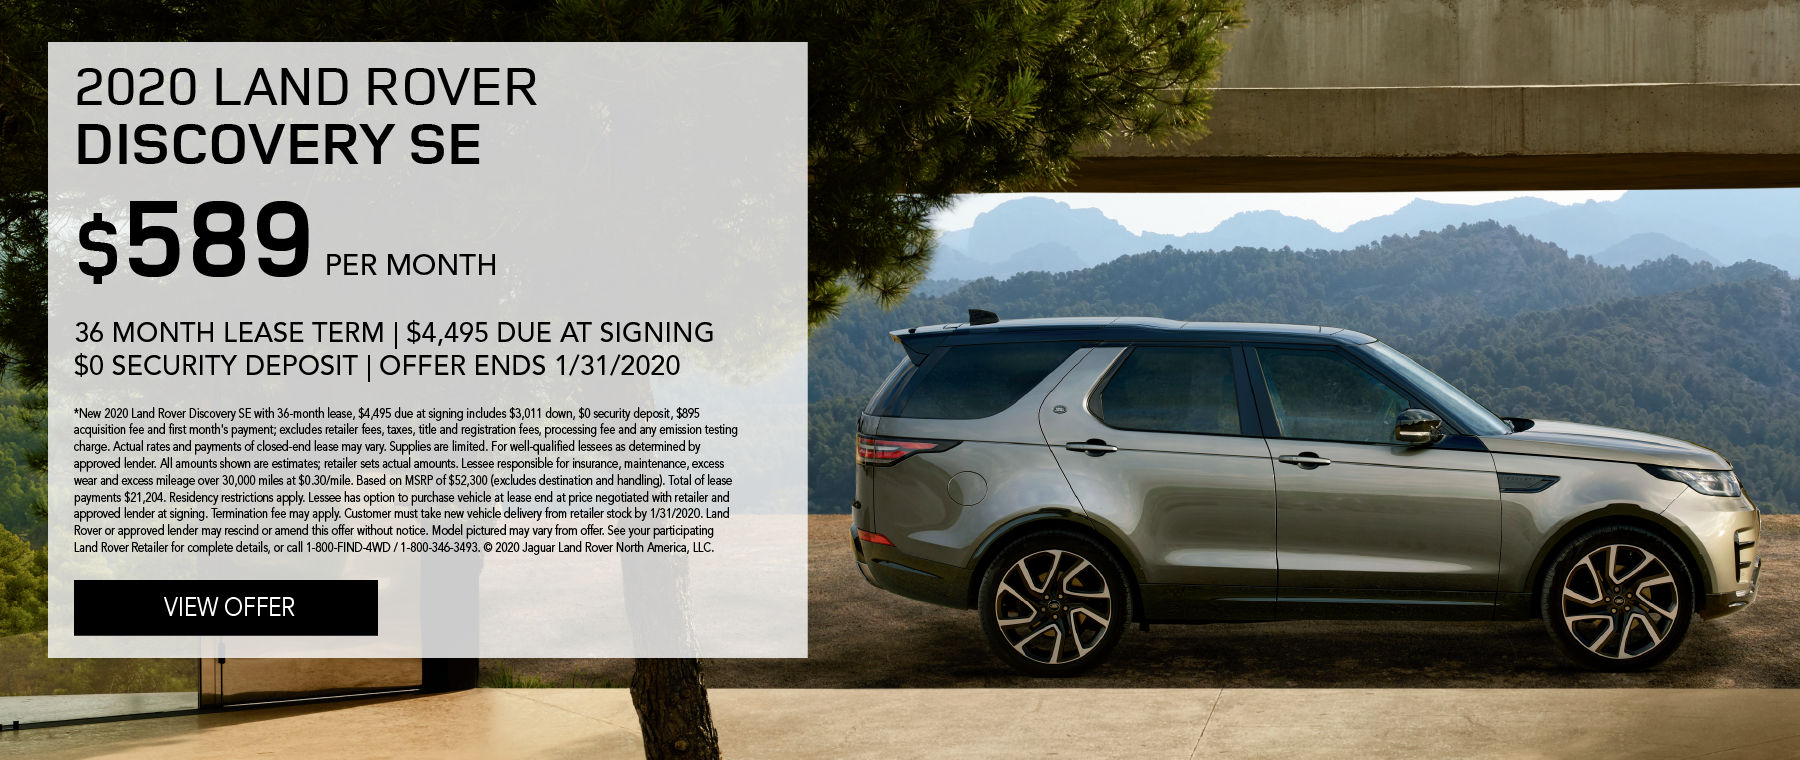 2020 Land Rover Discovery SE | $589/month | 36-month lease | 10,000 miles/year | $4,495 due at signing | $0 security deposit | expires 1/31/2020